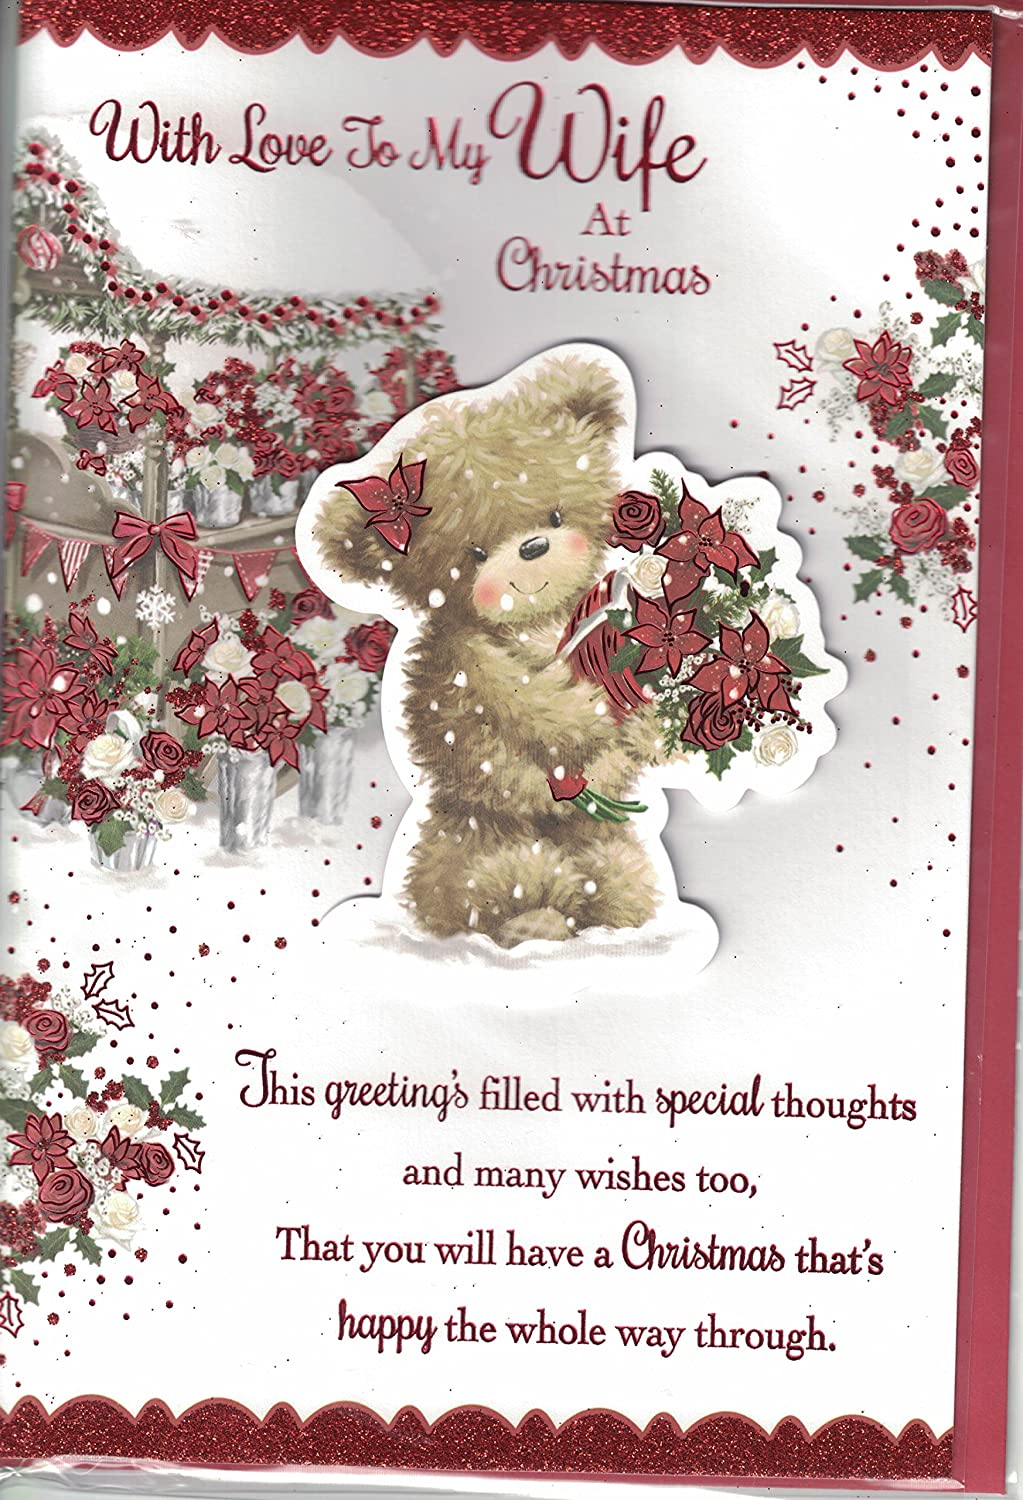 Wife Christmas Card To My Special Wife With Love Santa Bear